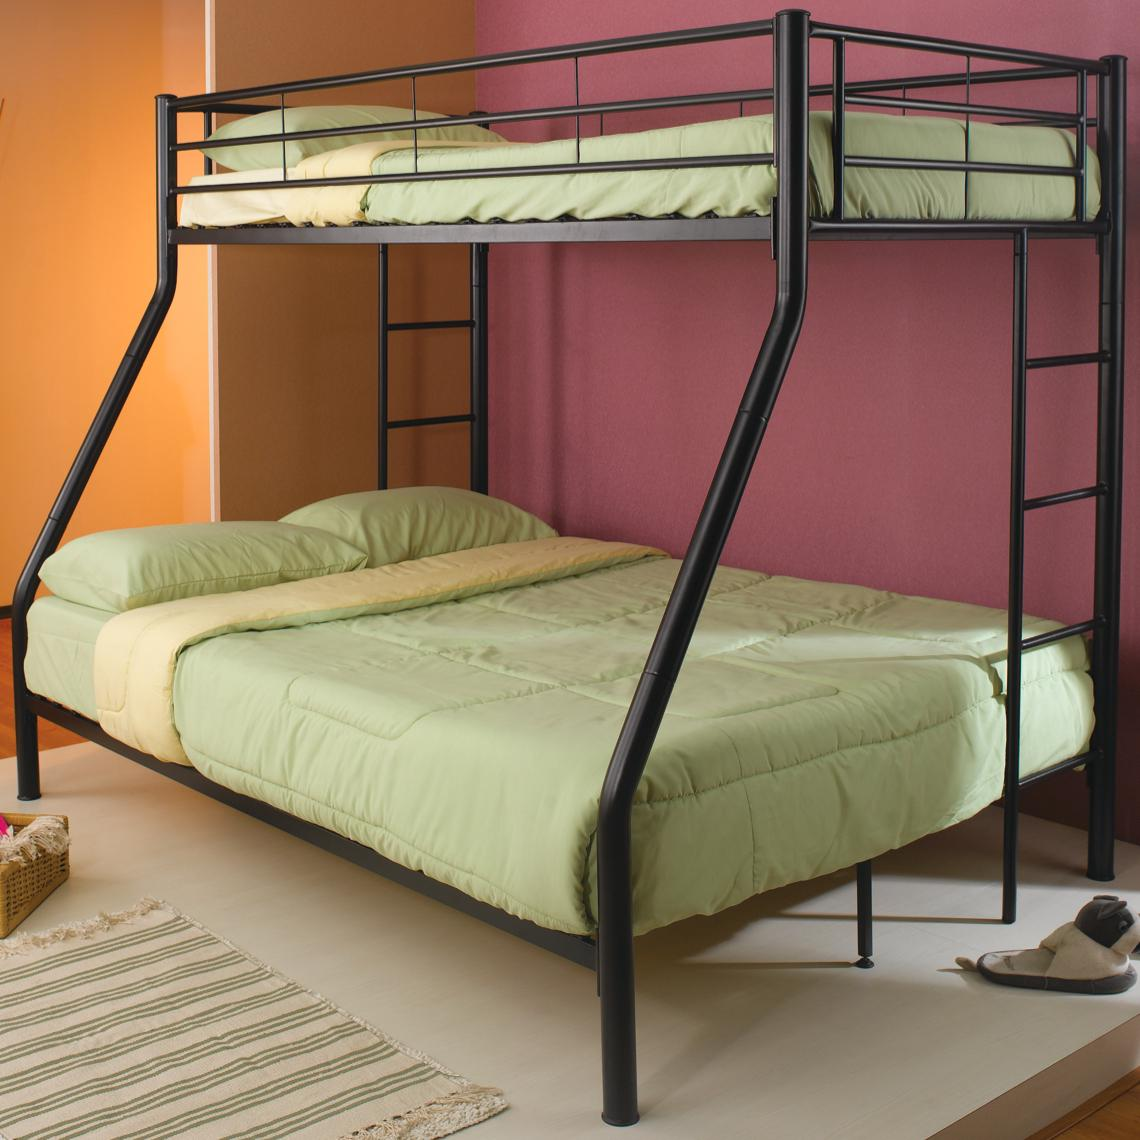 Mark Bunk-Bed — Coco Furniture Gallery Furnishing Dreams